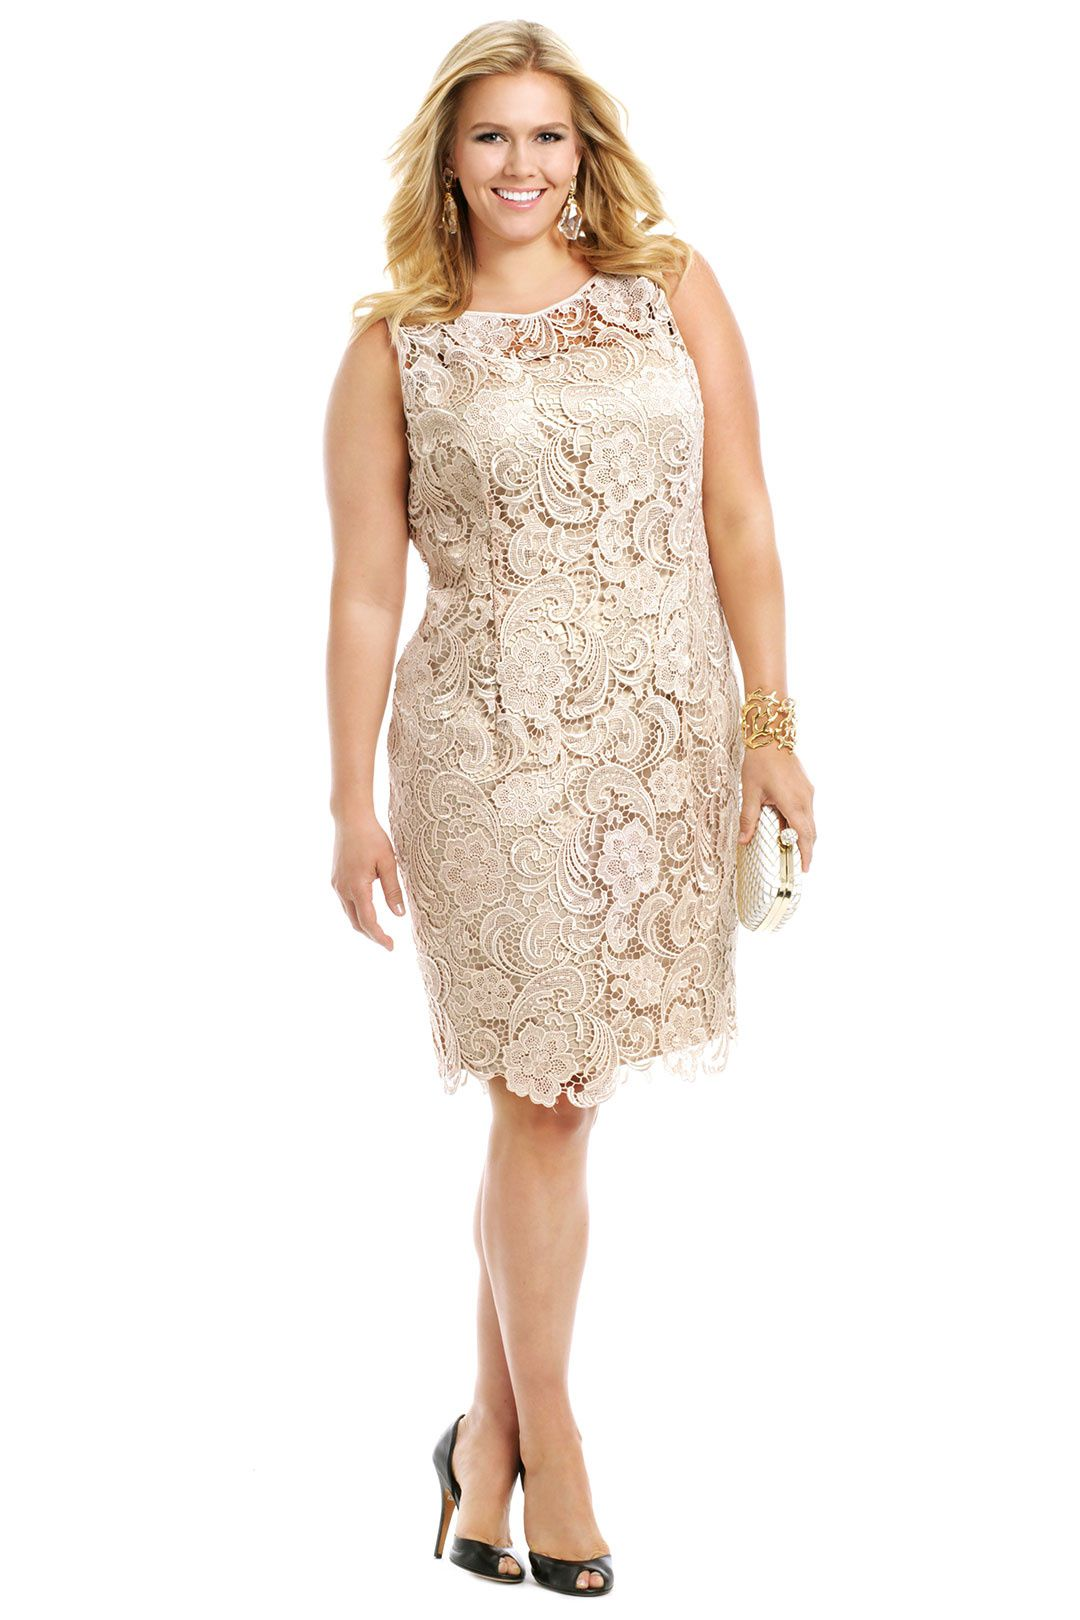 Dainty Danika Sheath by Adrianna Papell for $40 | Rent The Runway ...